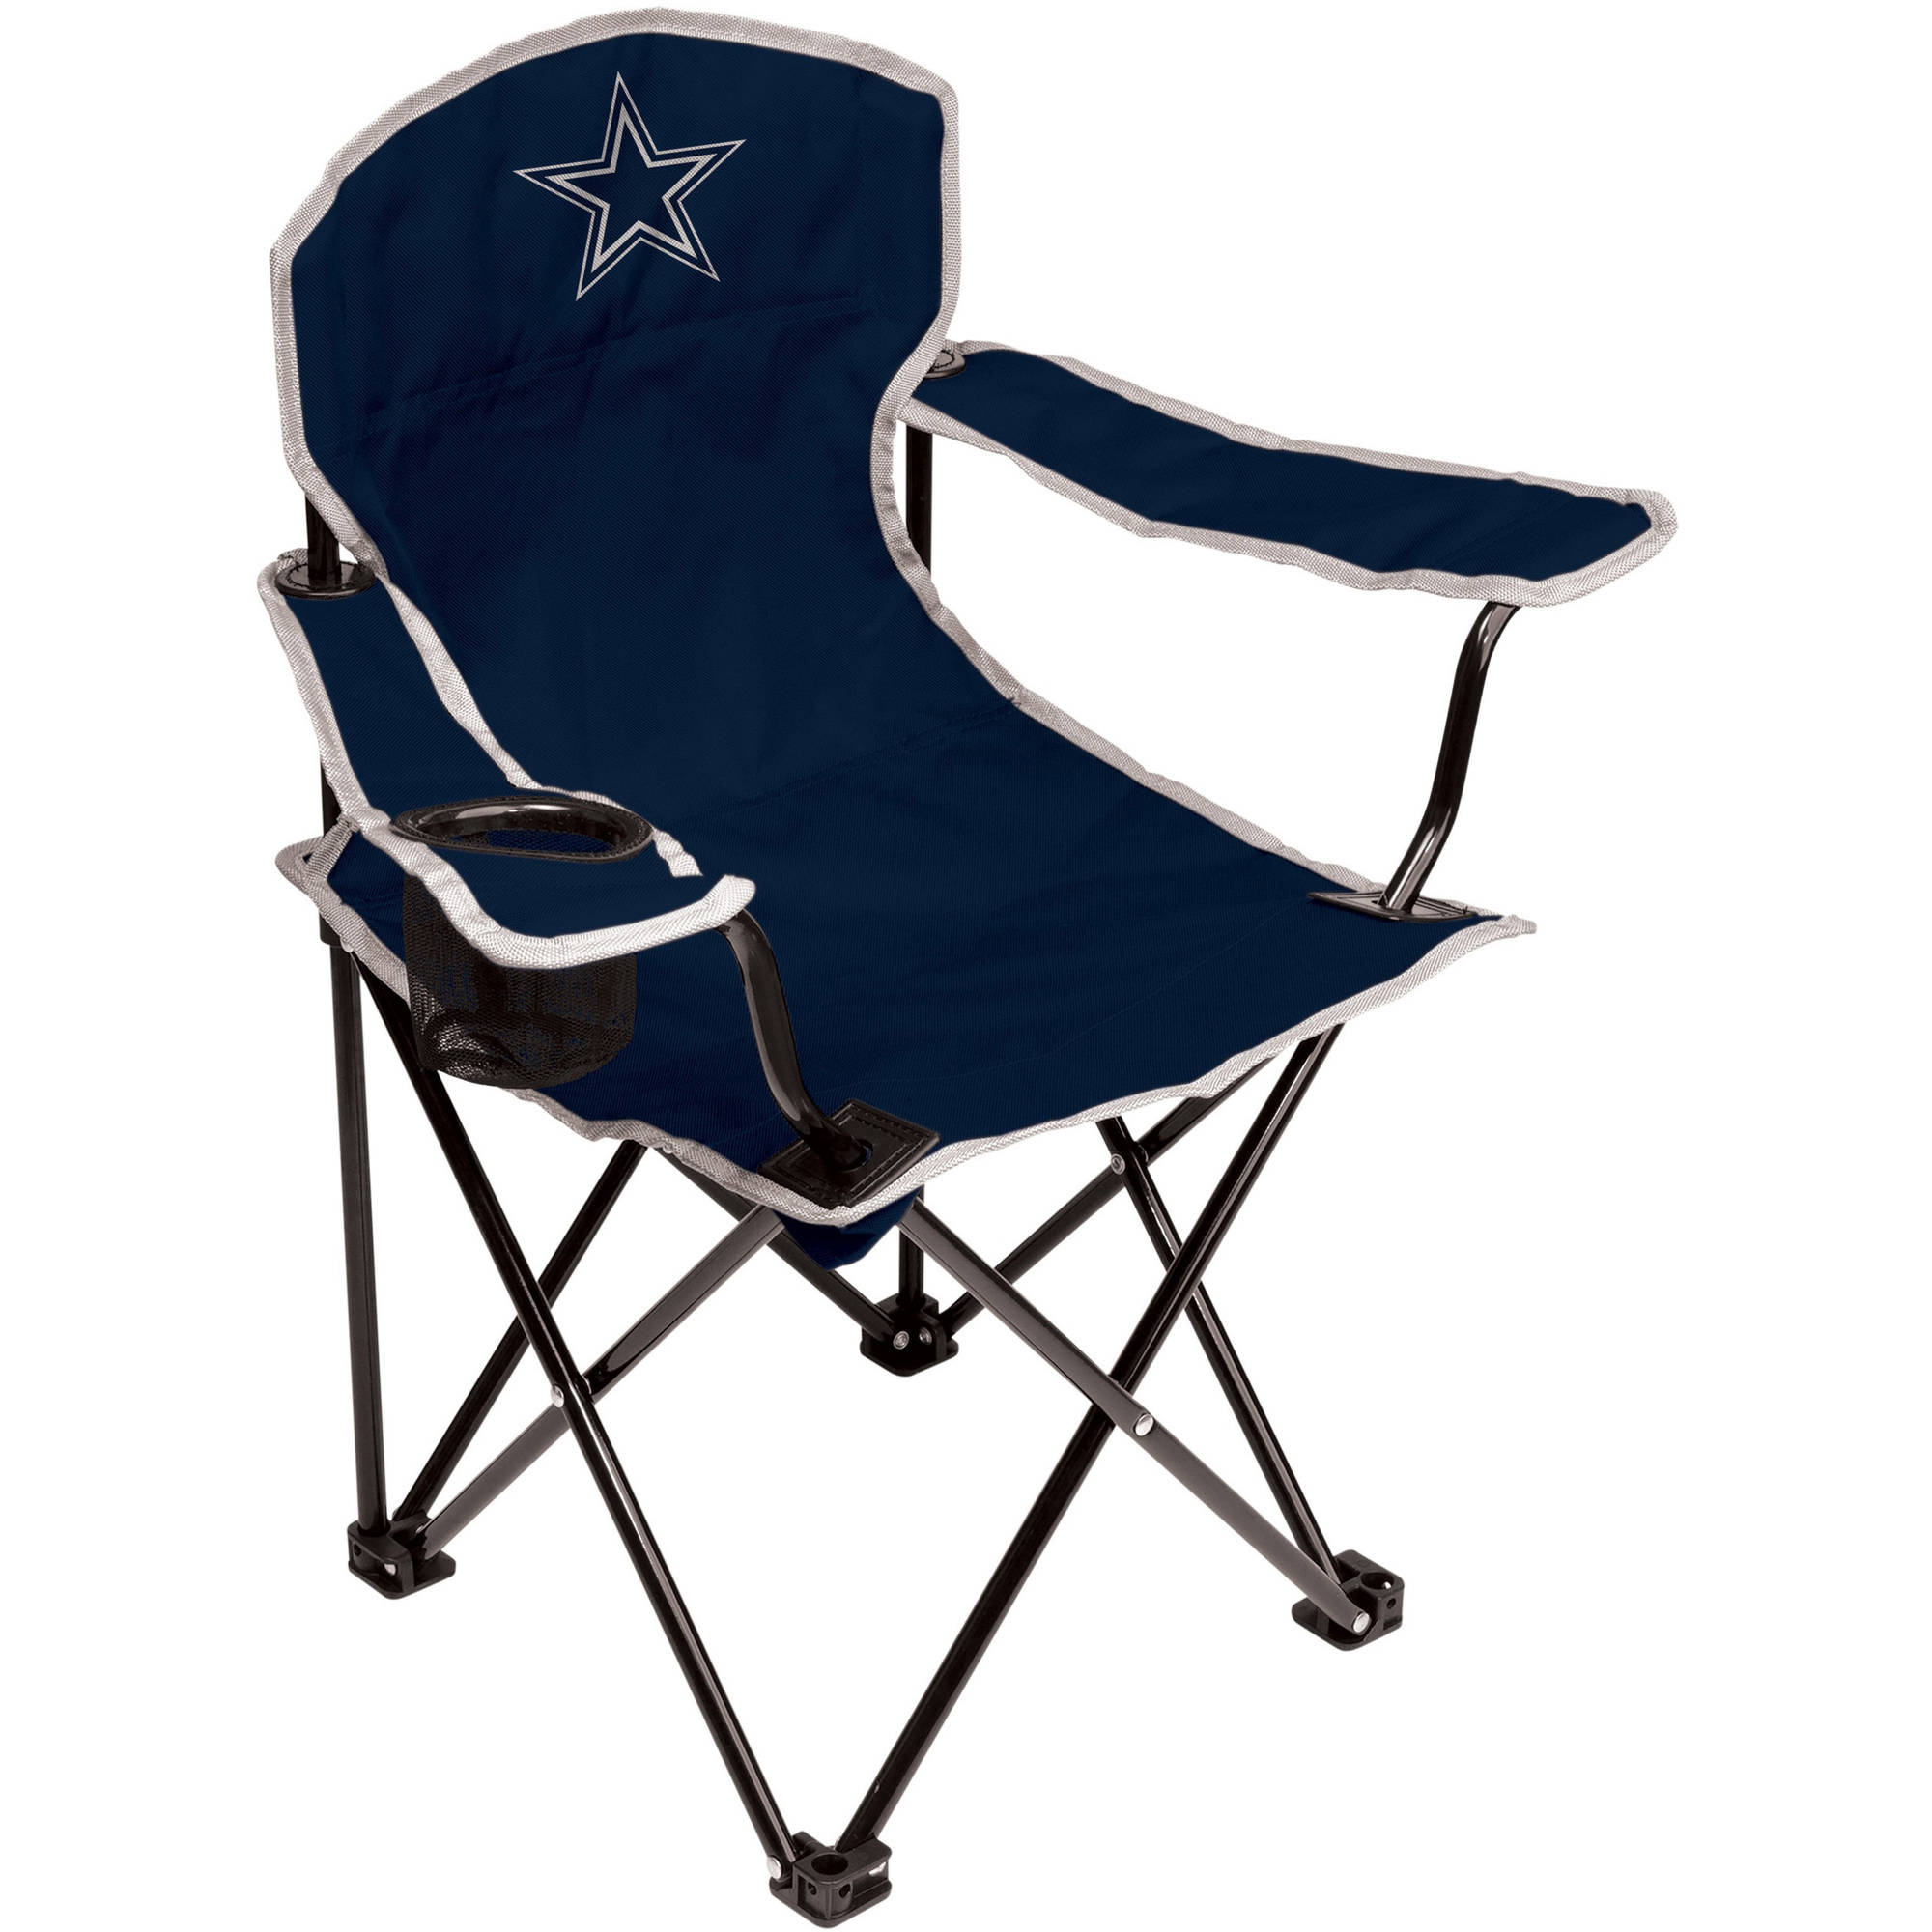 NFL Dallas Cowboys Youth Size Tailgate Chair from Coleman by Rawlings